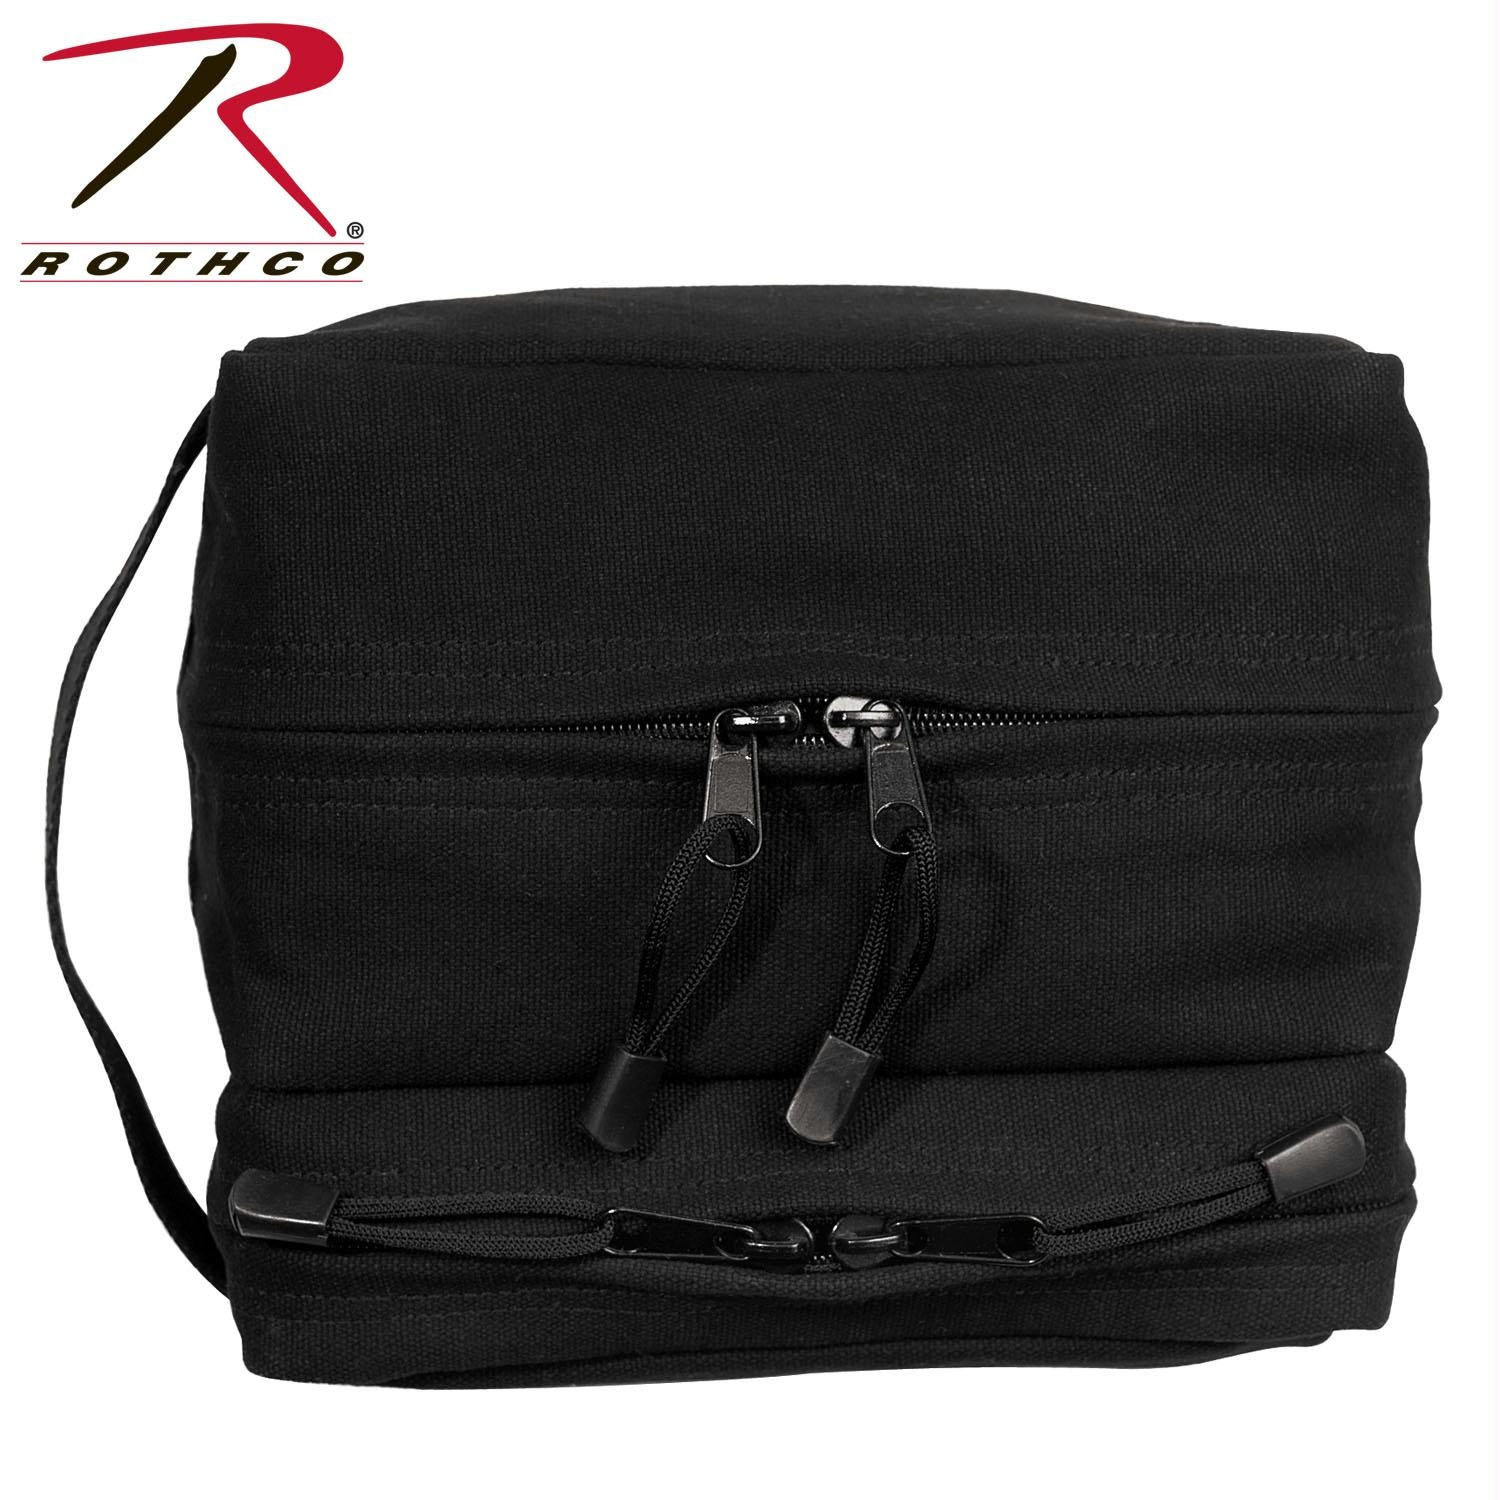 Rothco Canvas Dual Compartment Travel Kit